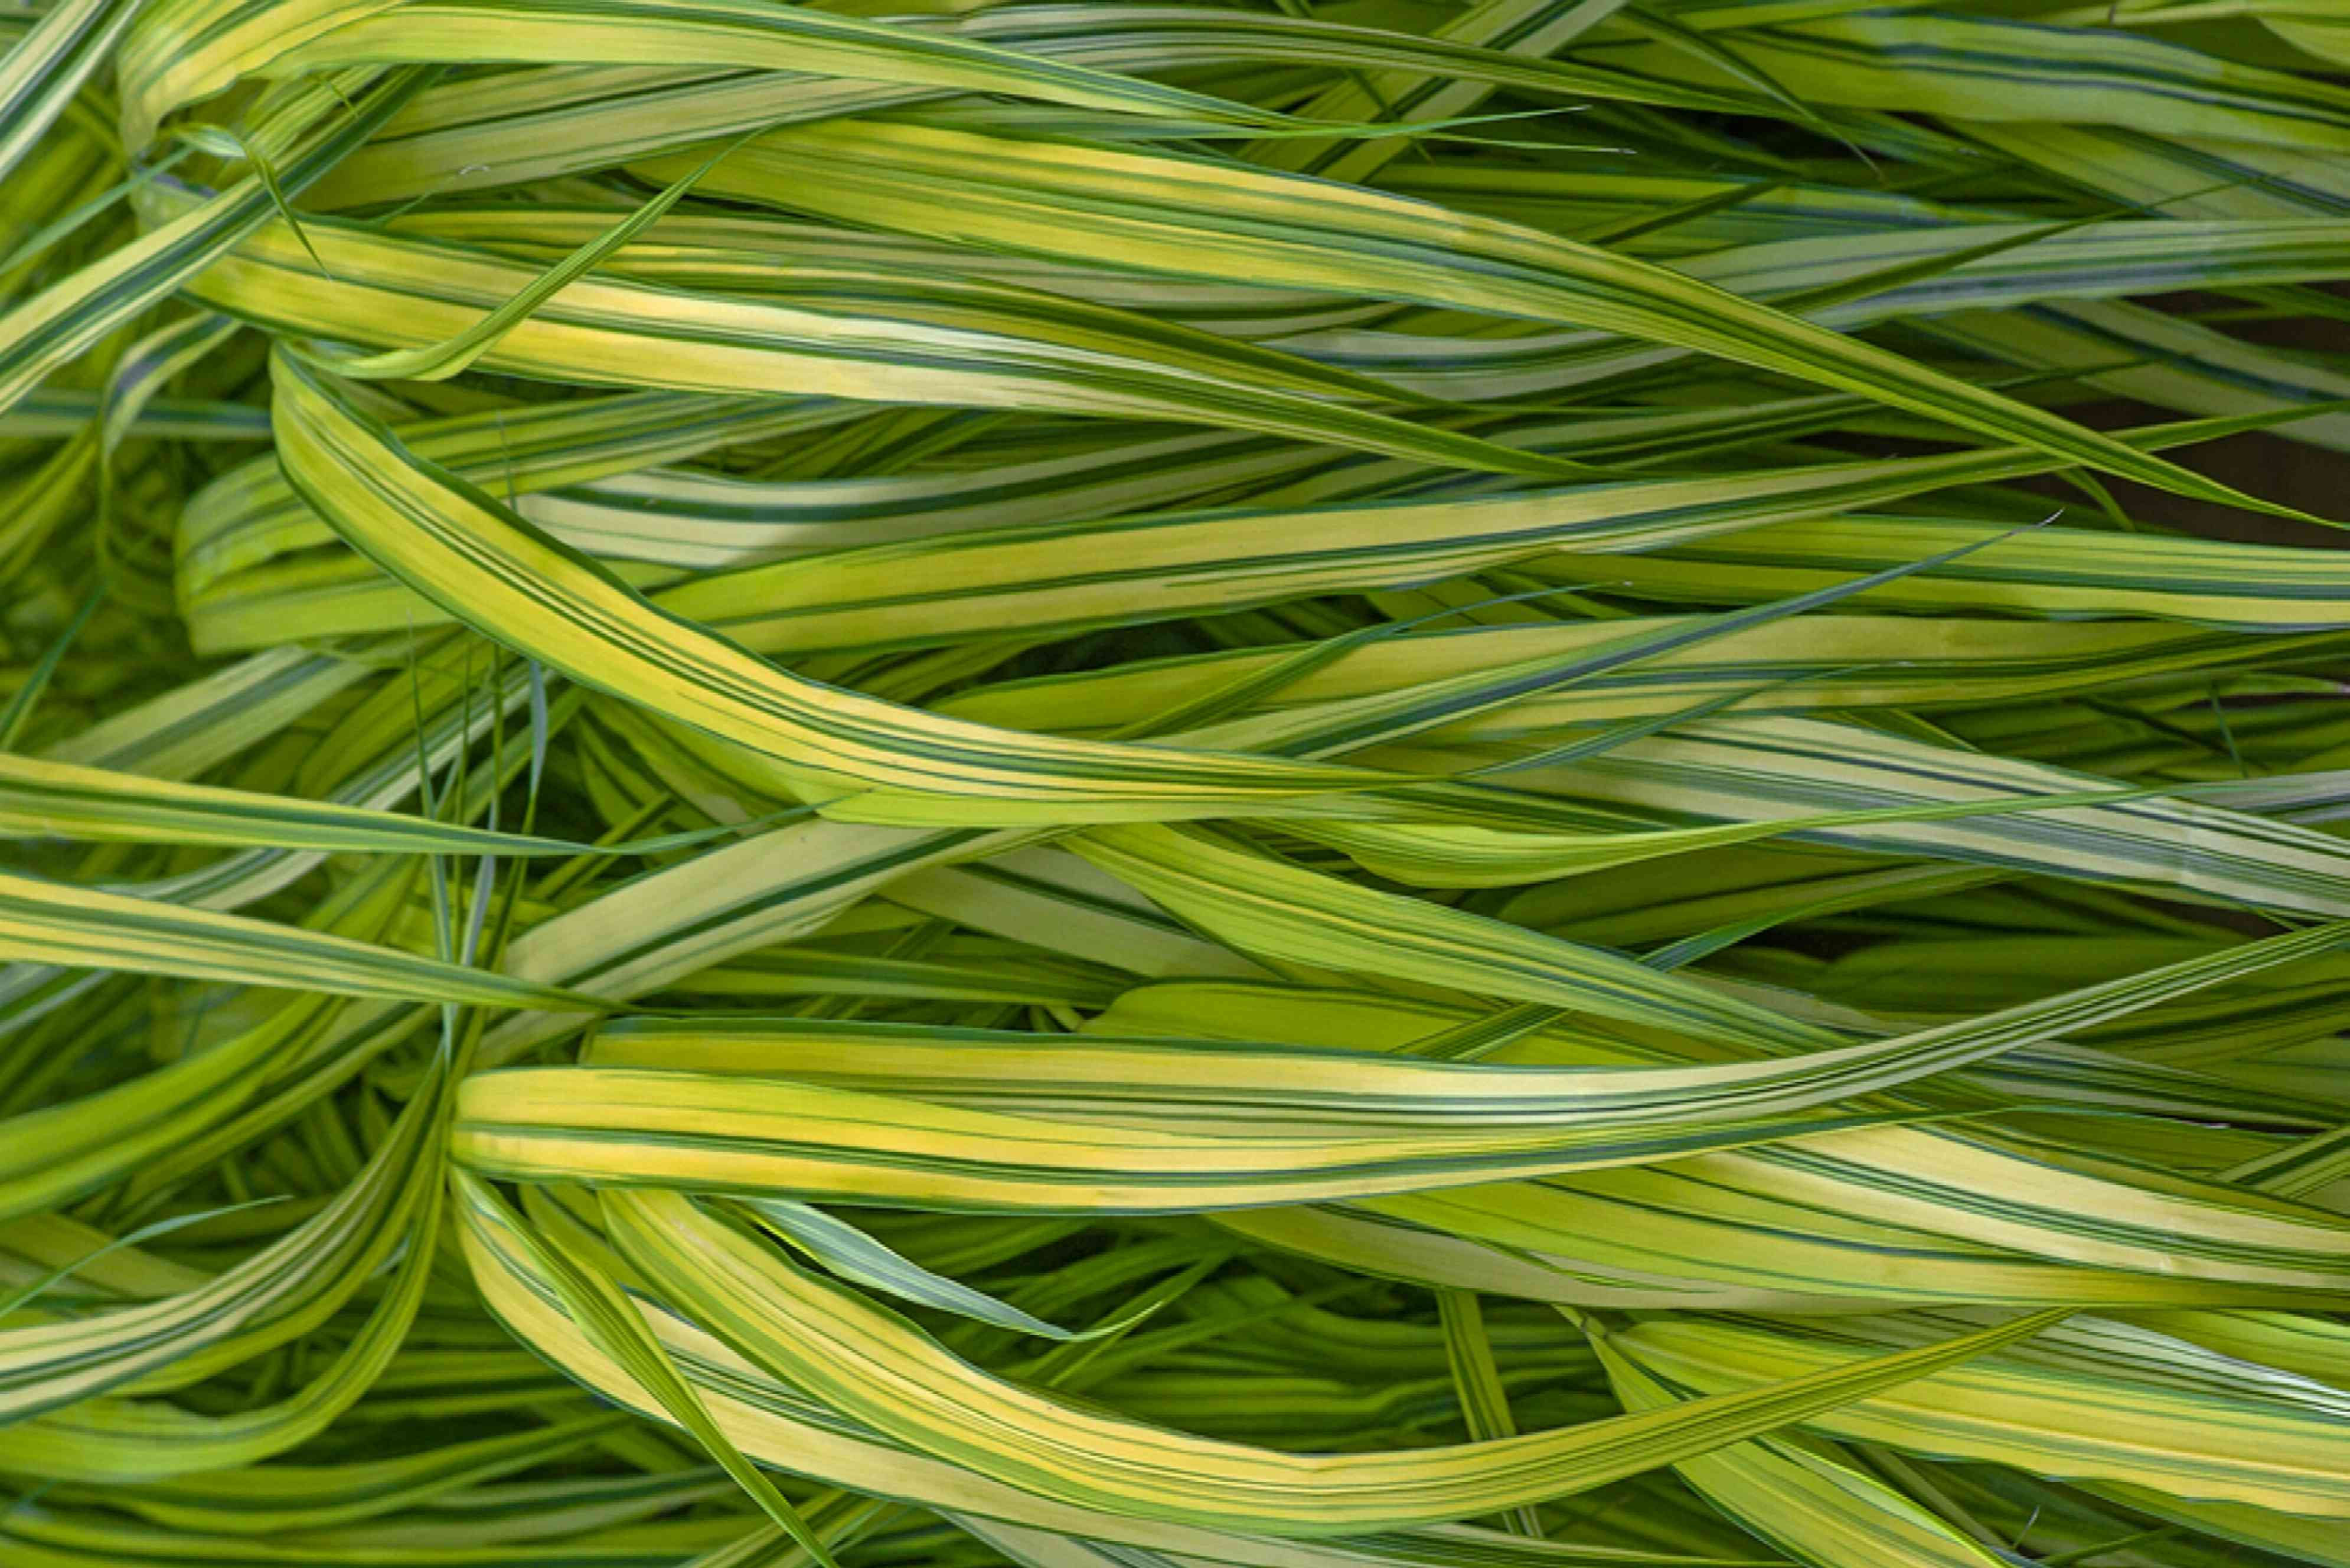 Golden Japanese forest grass blades with yellow-green blades and green stripes closeup